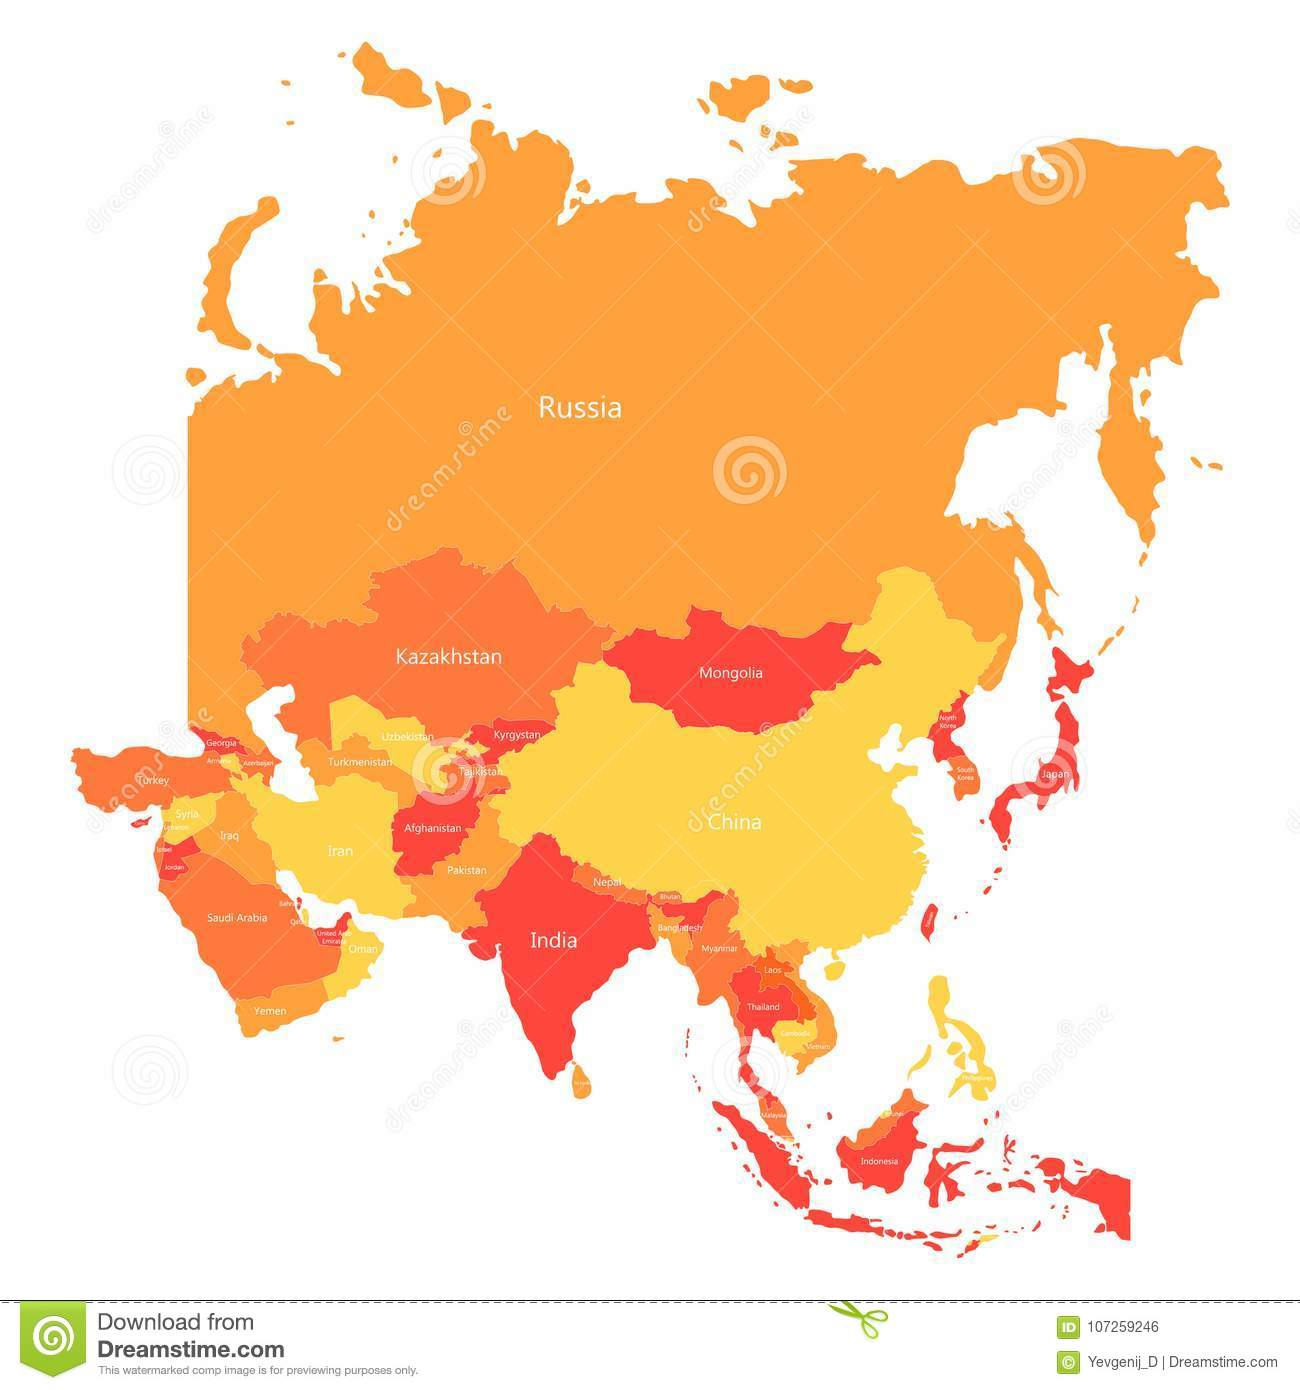 Map Of The Countries In Asia.Vector Asia Map With Countries Borders Abstract Red And Yellow Asia